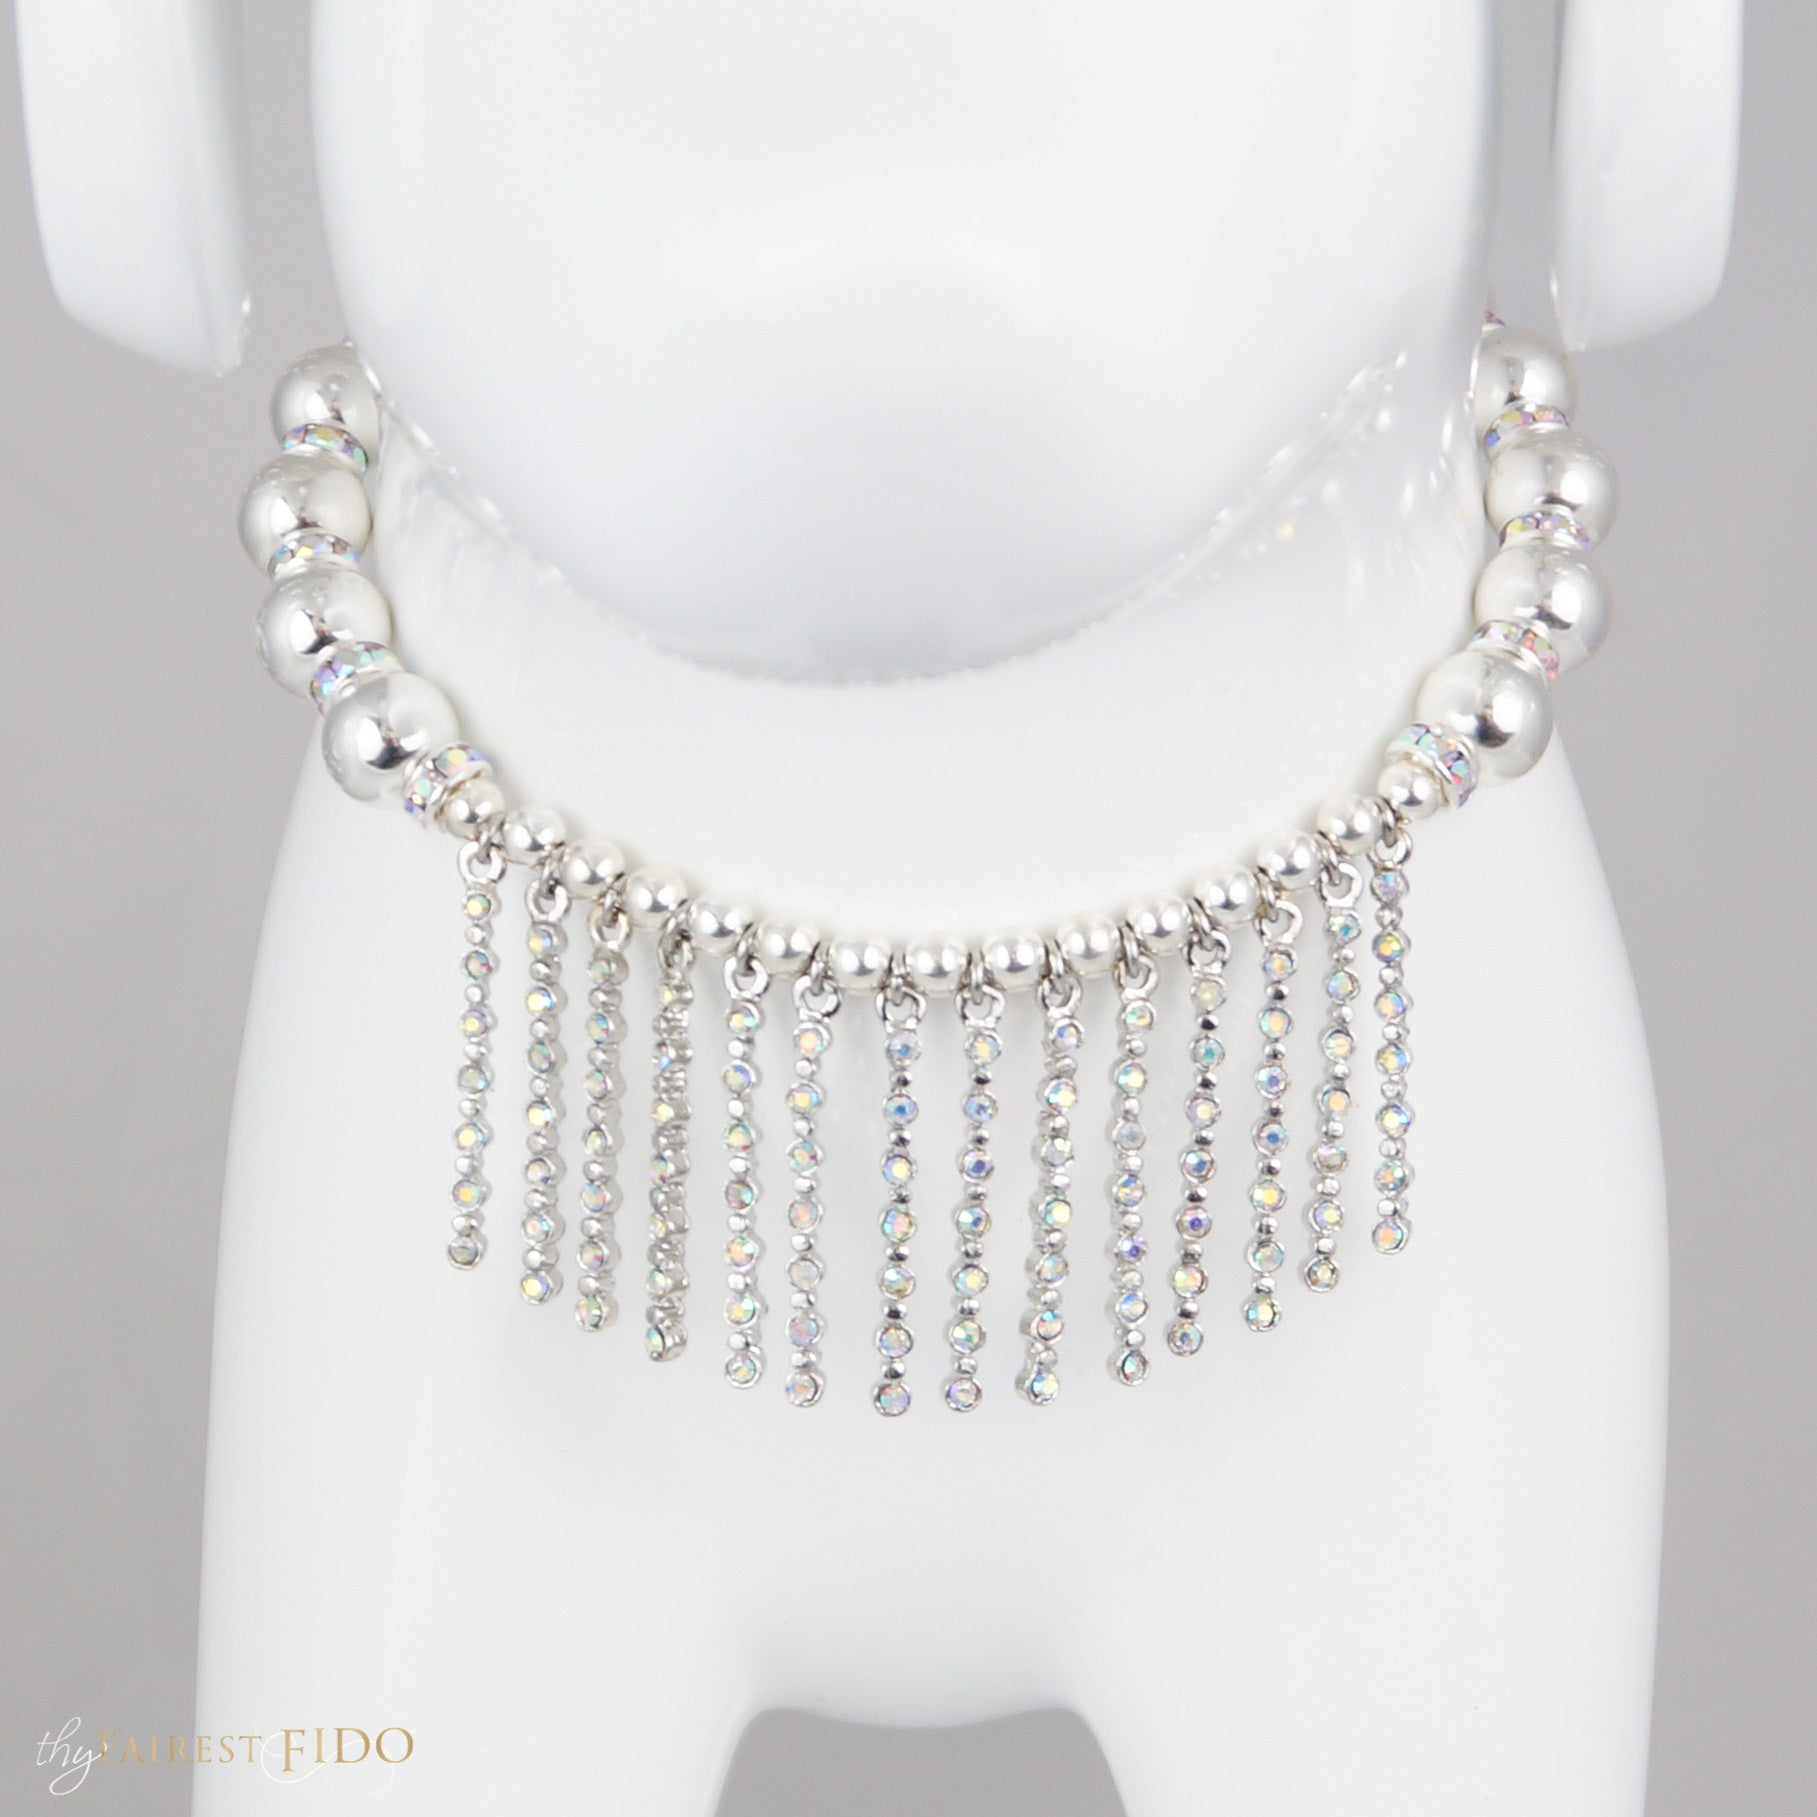 Fairytale Fringe, AB crystal sticks bibb necklace with signature silver metal beads, width 2